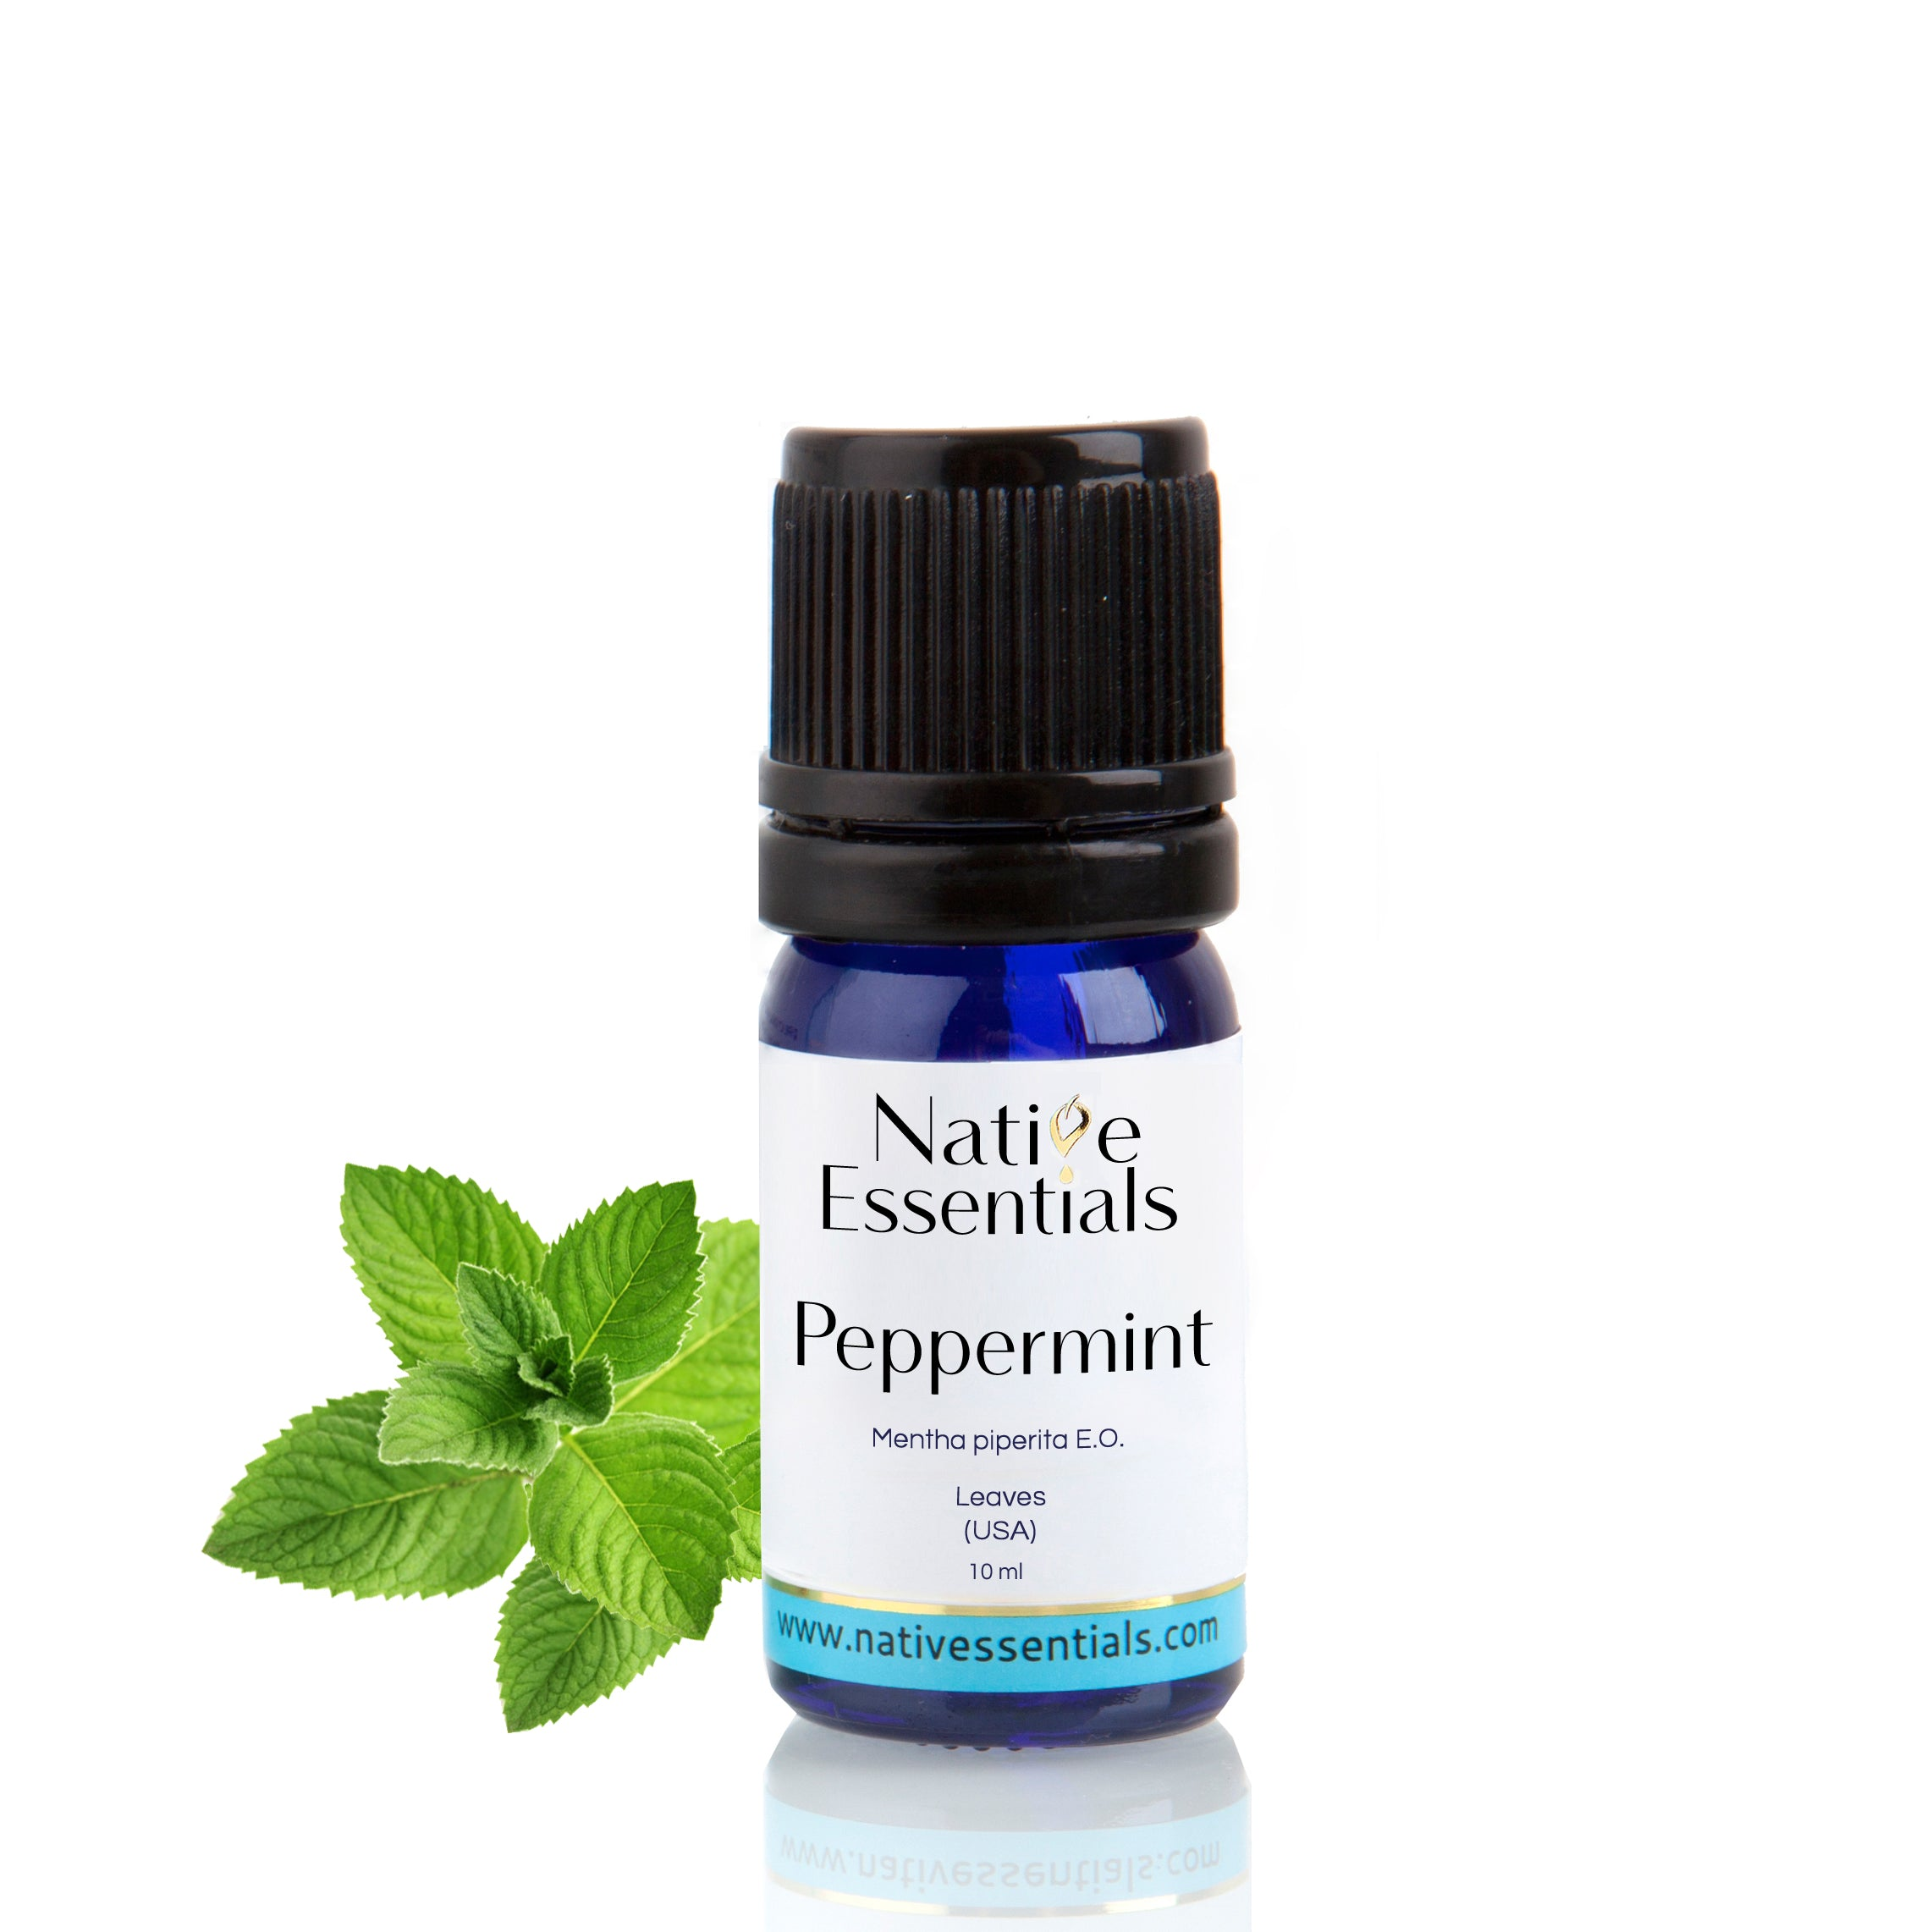 Peppermint Essential Oil (Organic US) - Native Essentials